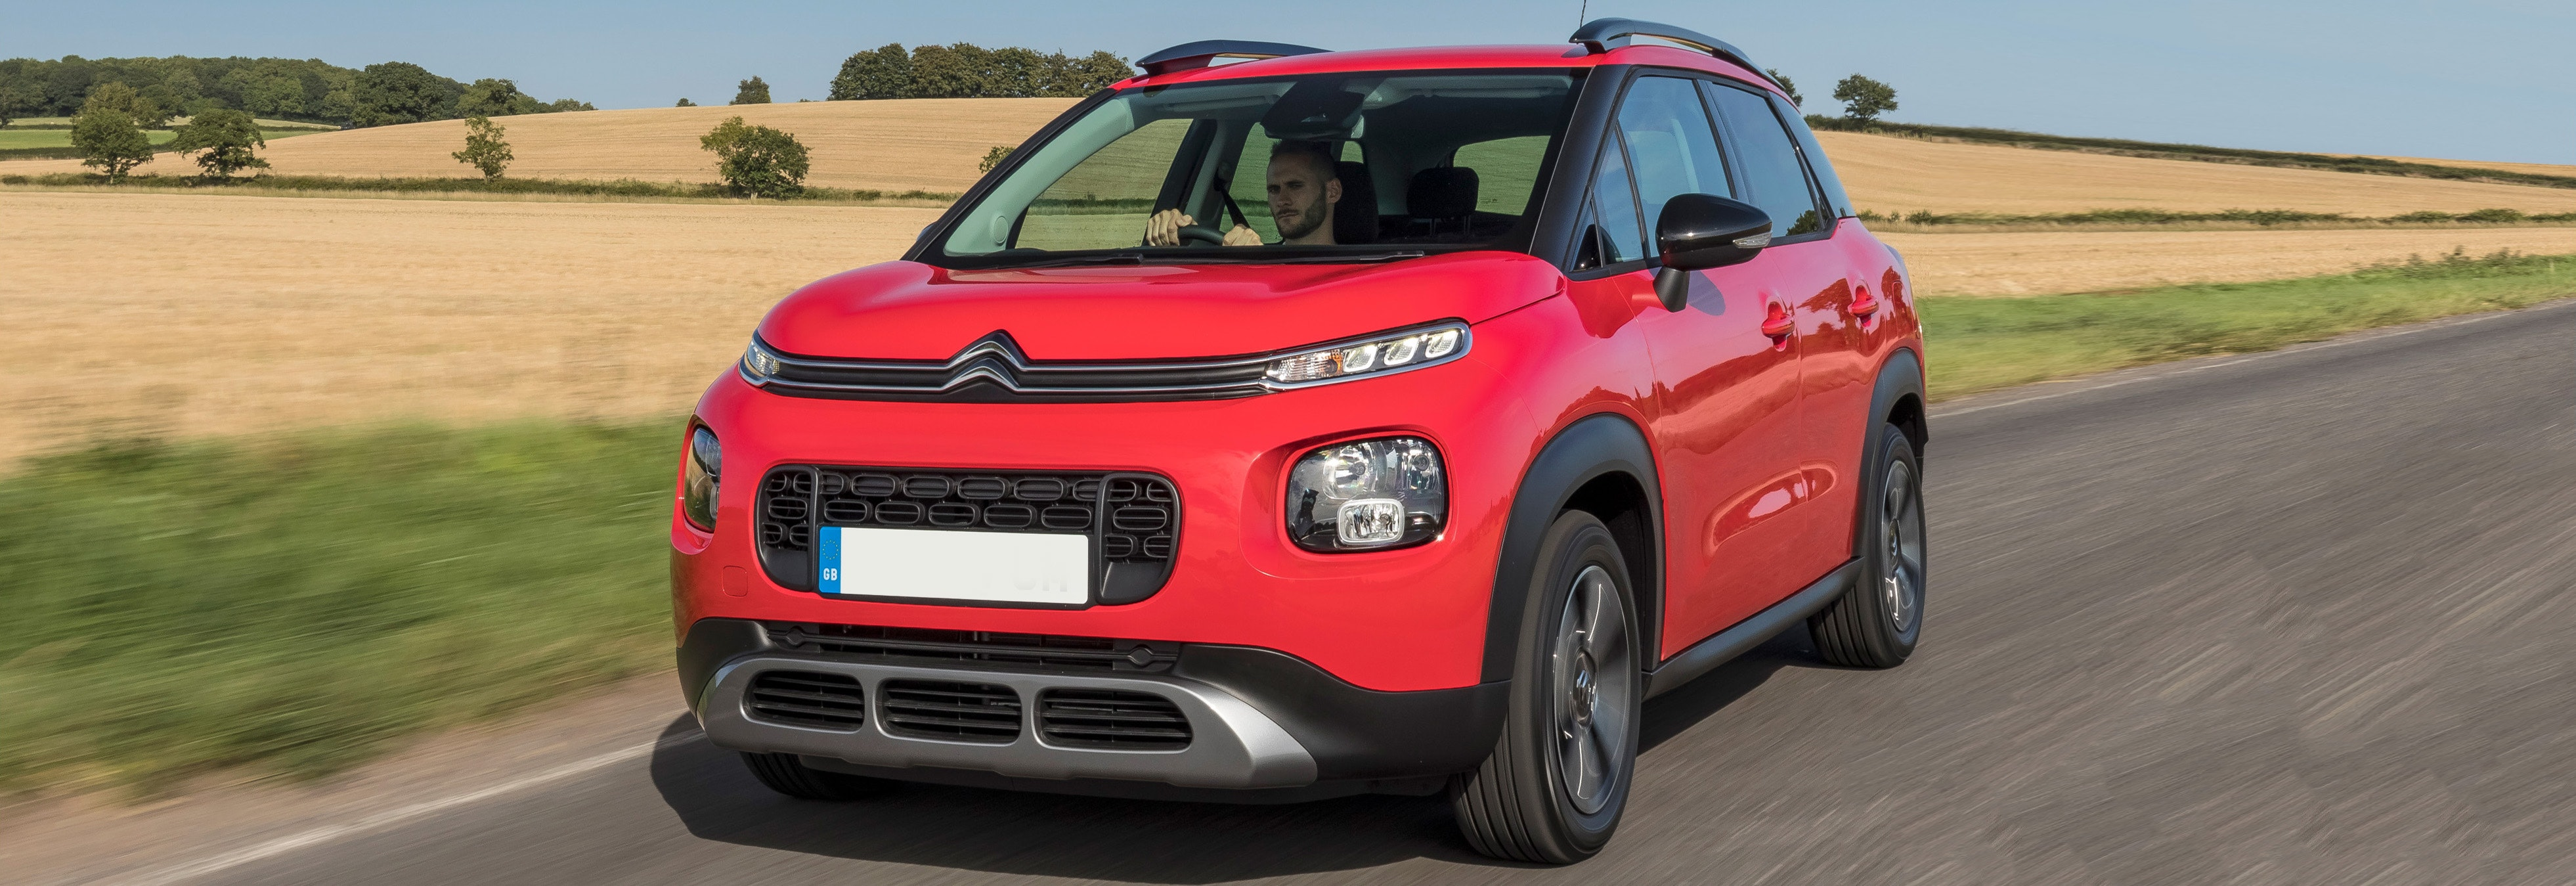 Red Citroen C3 Aircross driving, viewed from the front